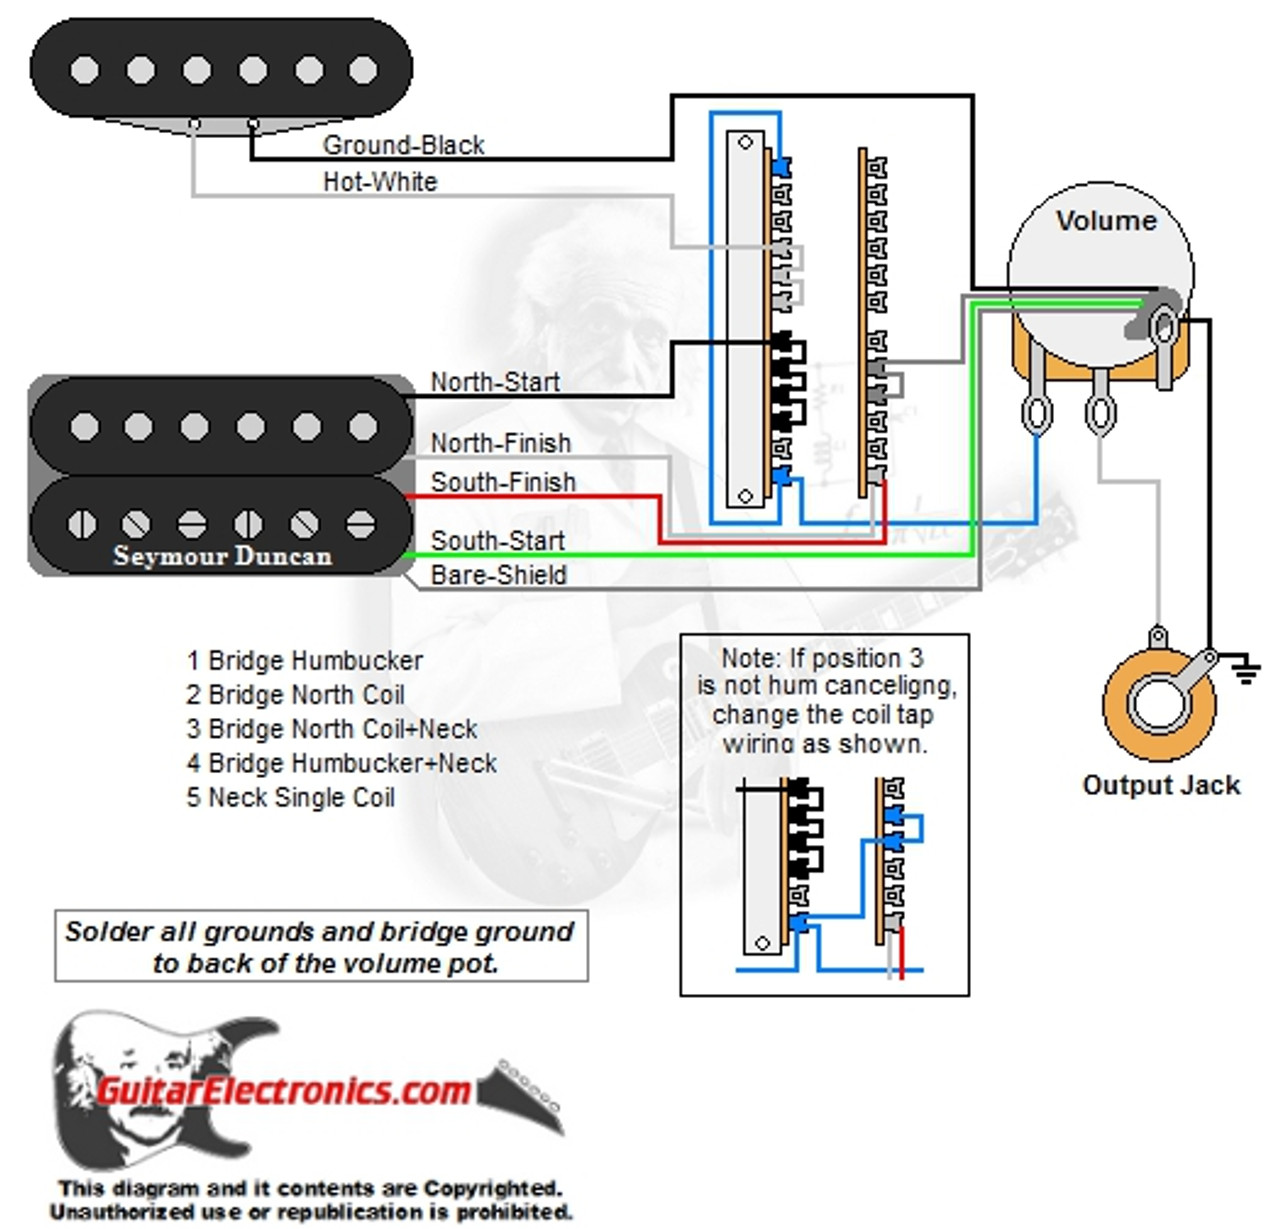 small resolution of 1 humbucker 1 single coil 5 way lever switch 1 volume 01 wiring diagram for bridge humbucker single coil in neck telecaster